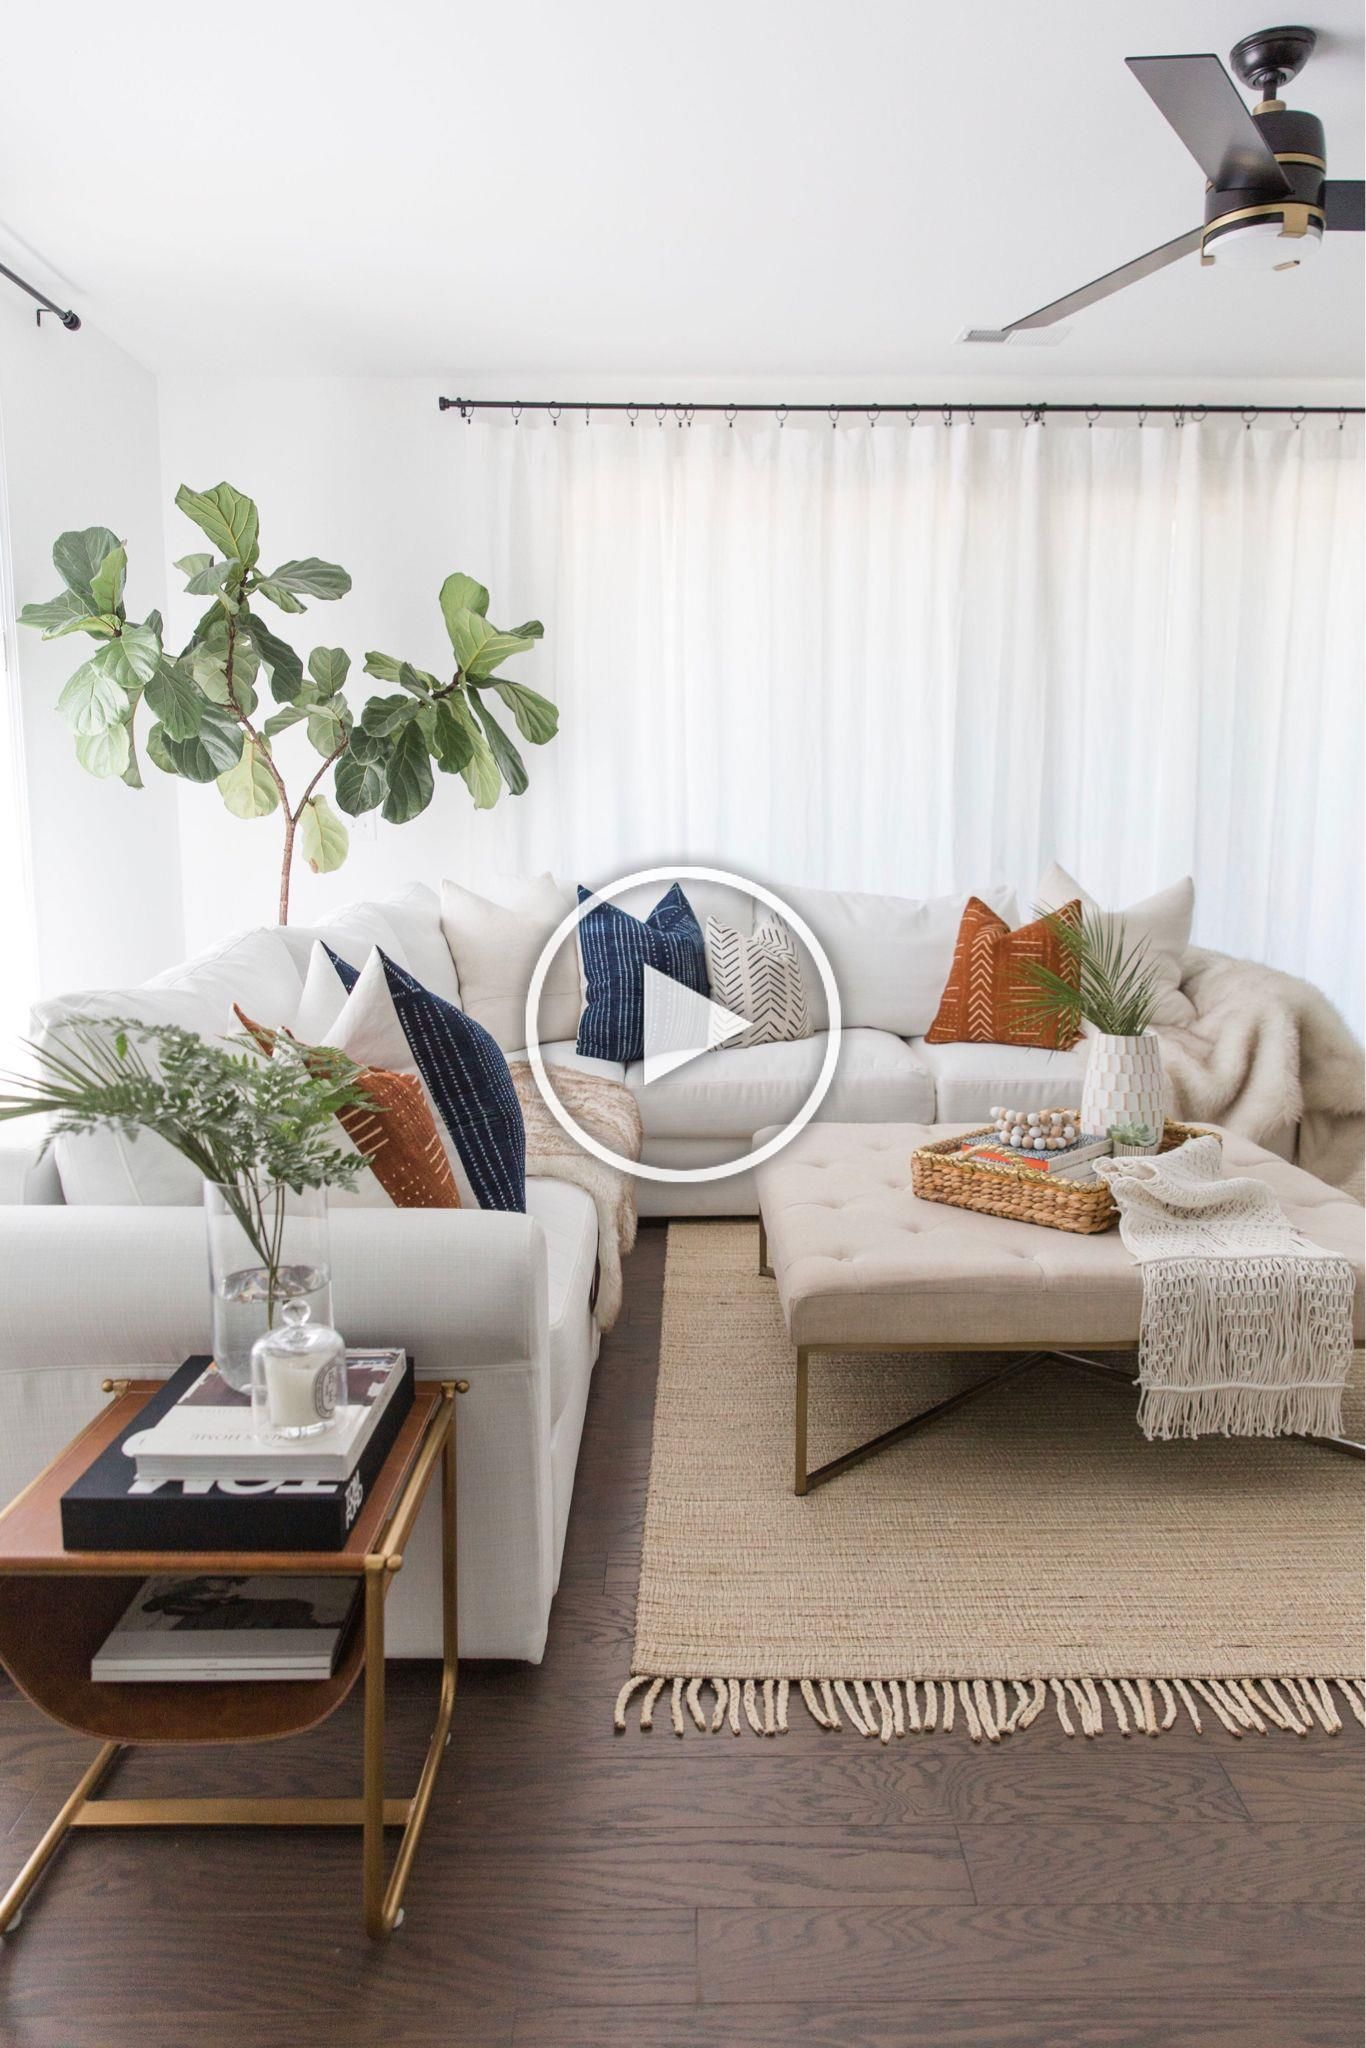 click the photo to instantly shop the living room details